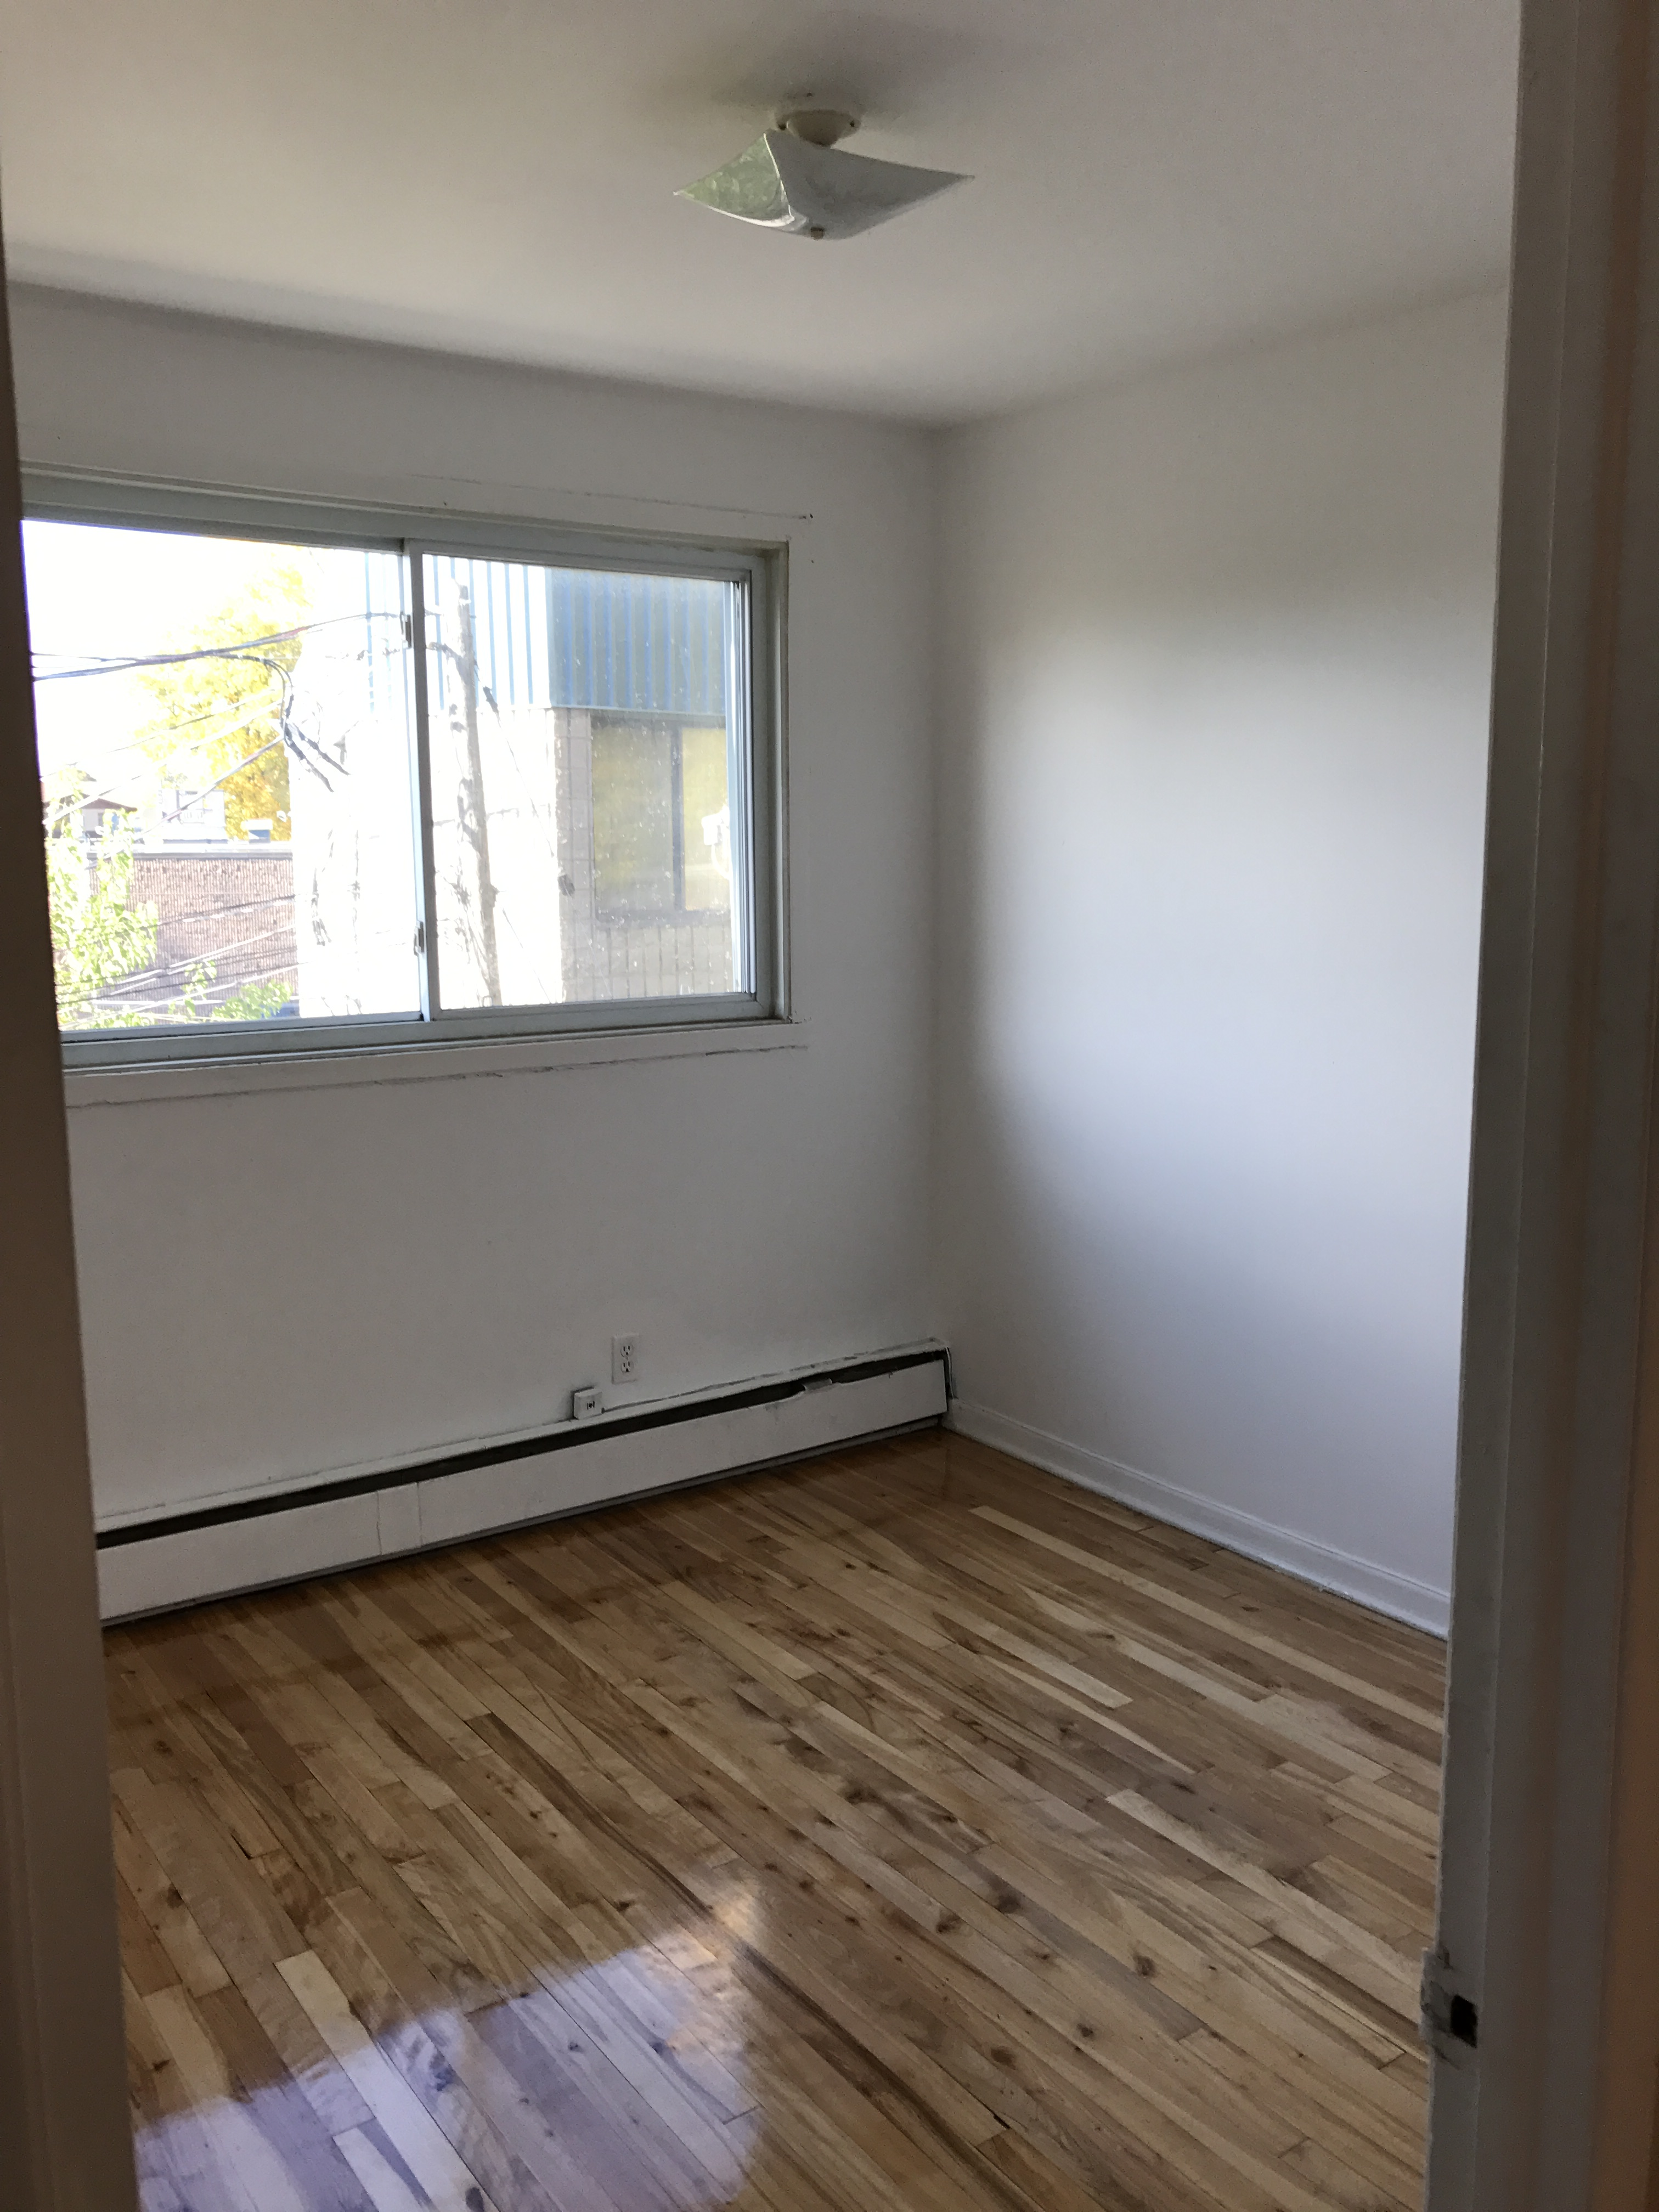 2 bedroom Apartments for rent in Laval at 4750 Samson - Photo 02 - RentQuebecApartments – L31348